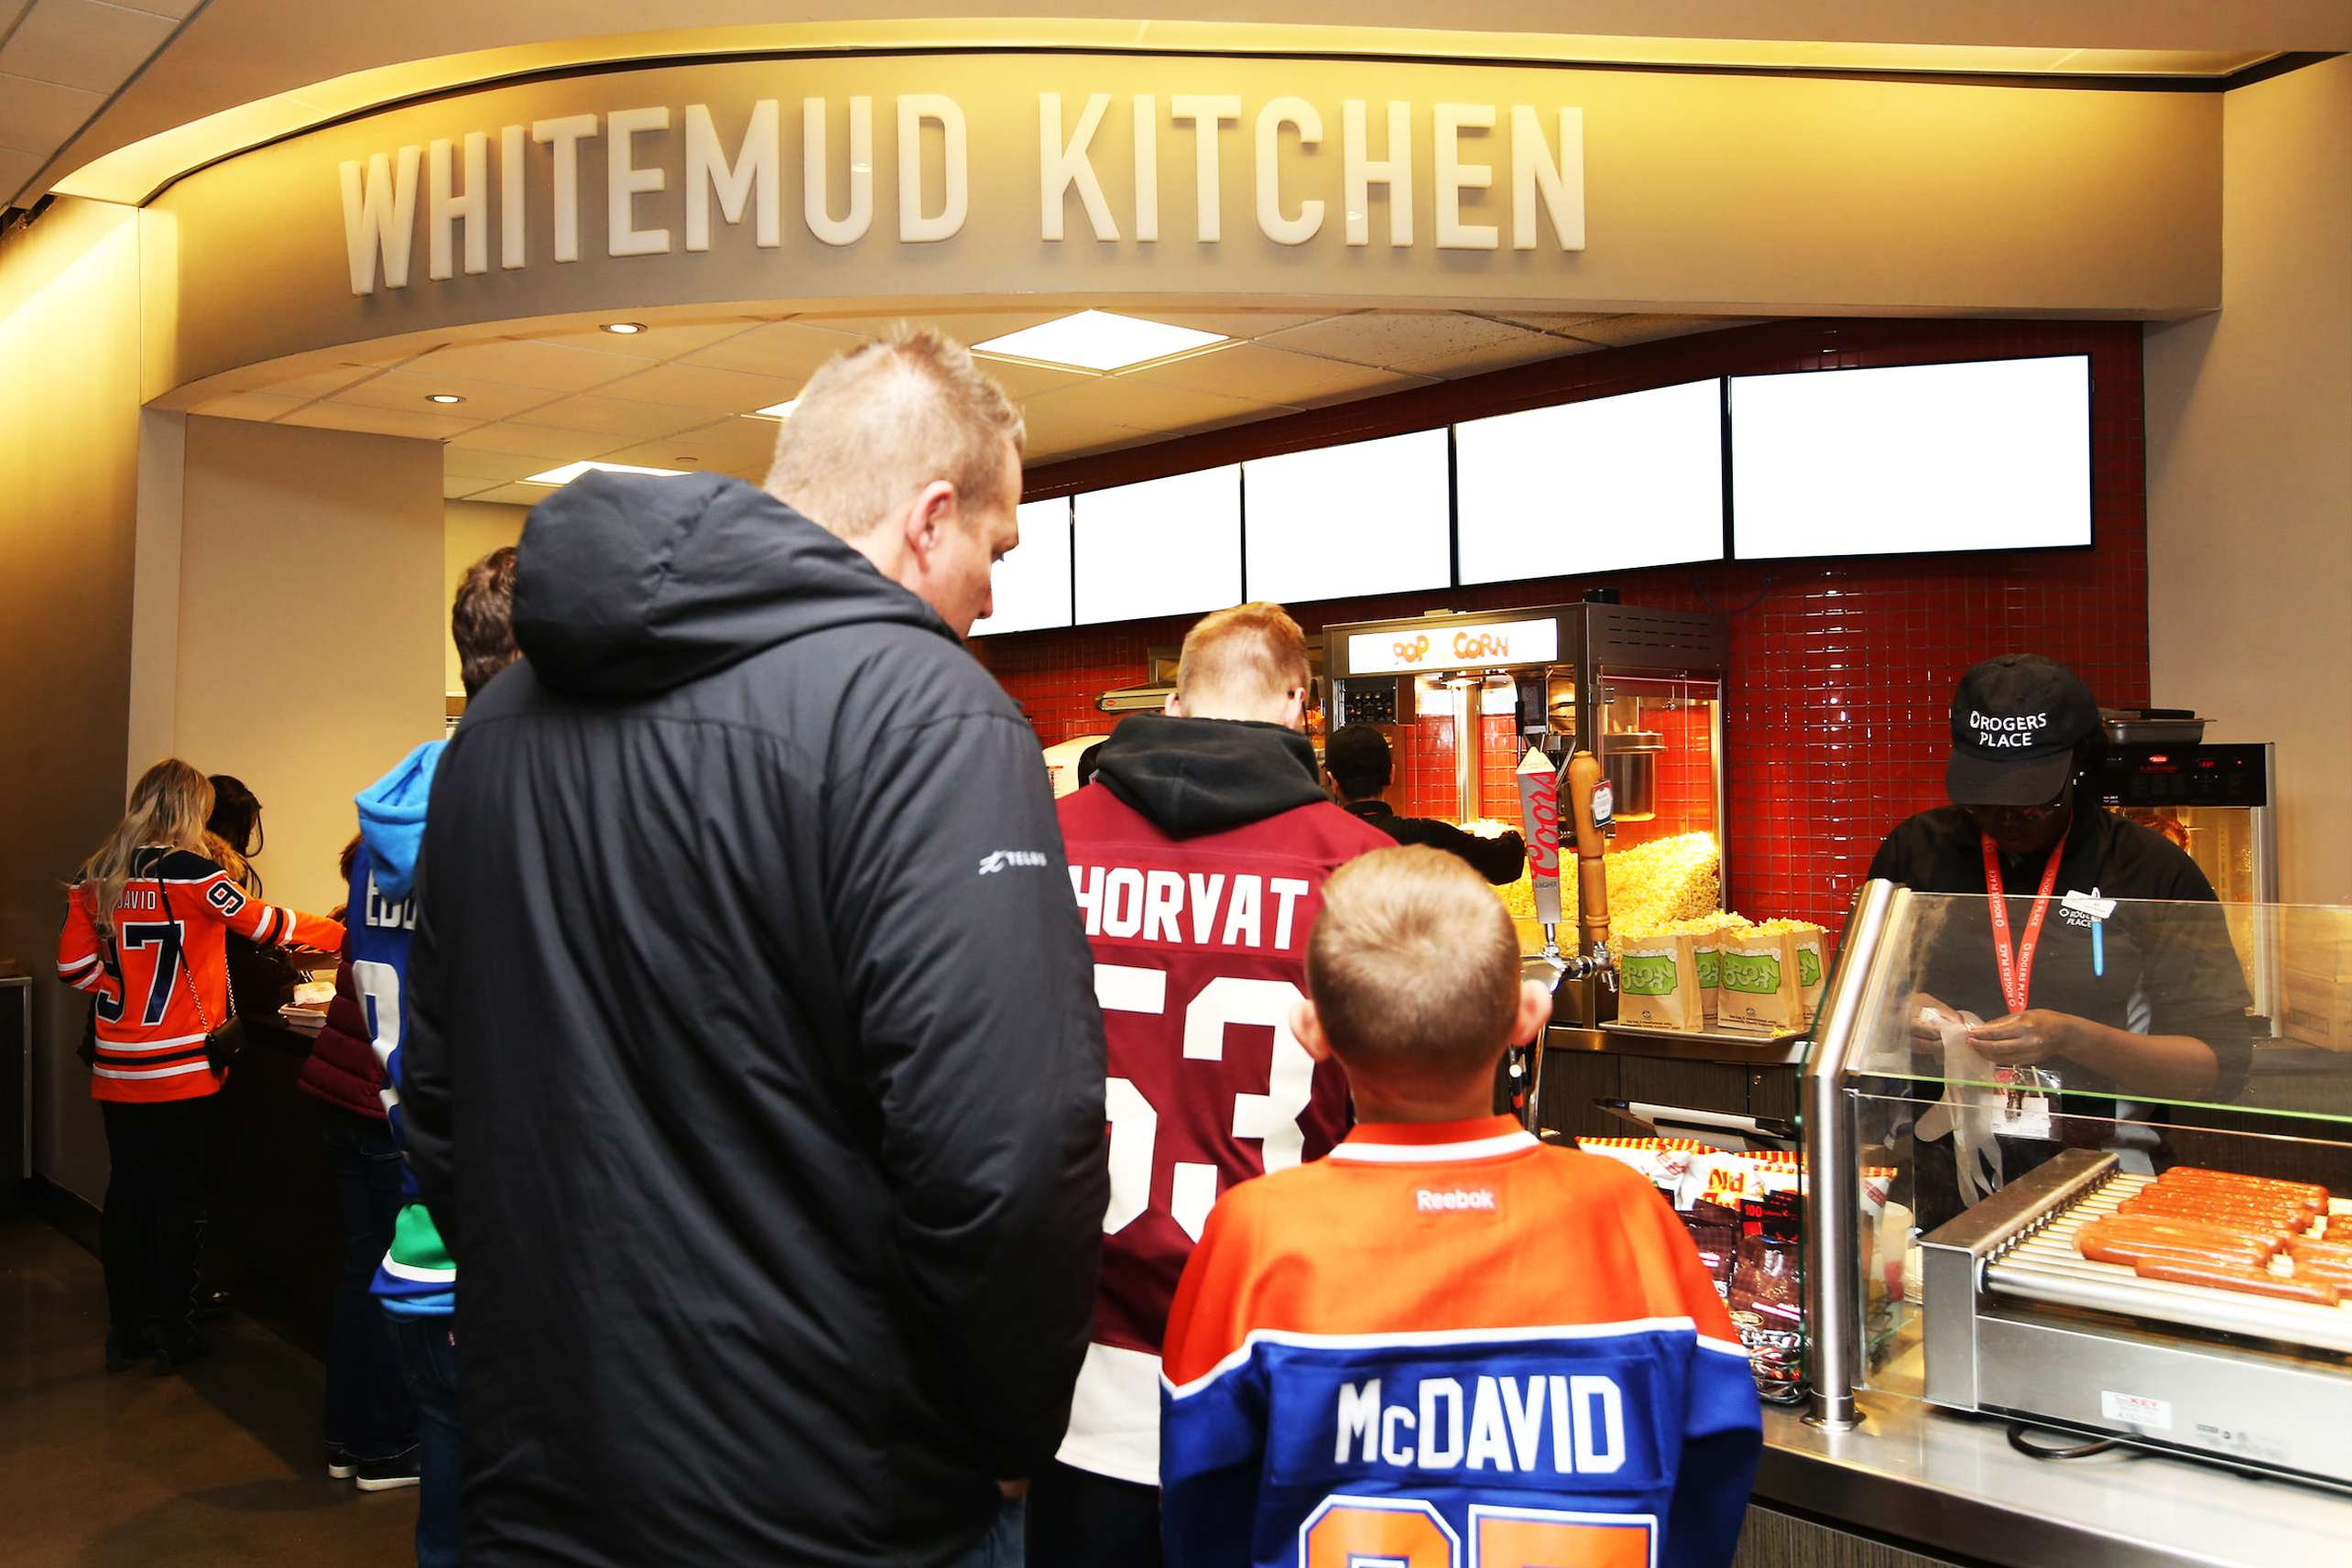 Whitemud Kitchen